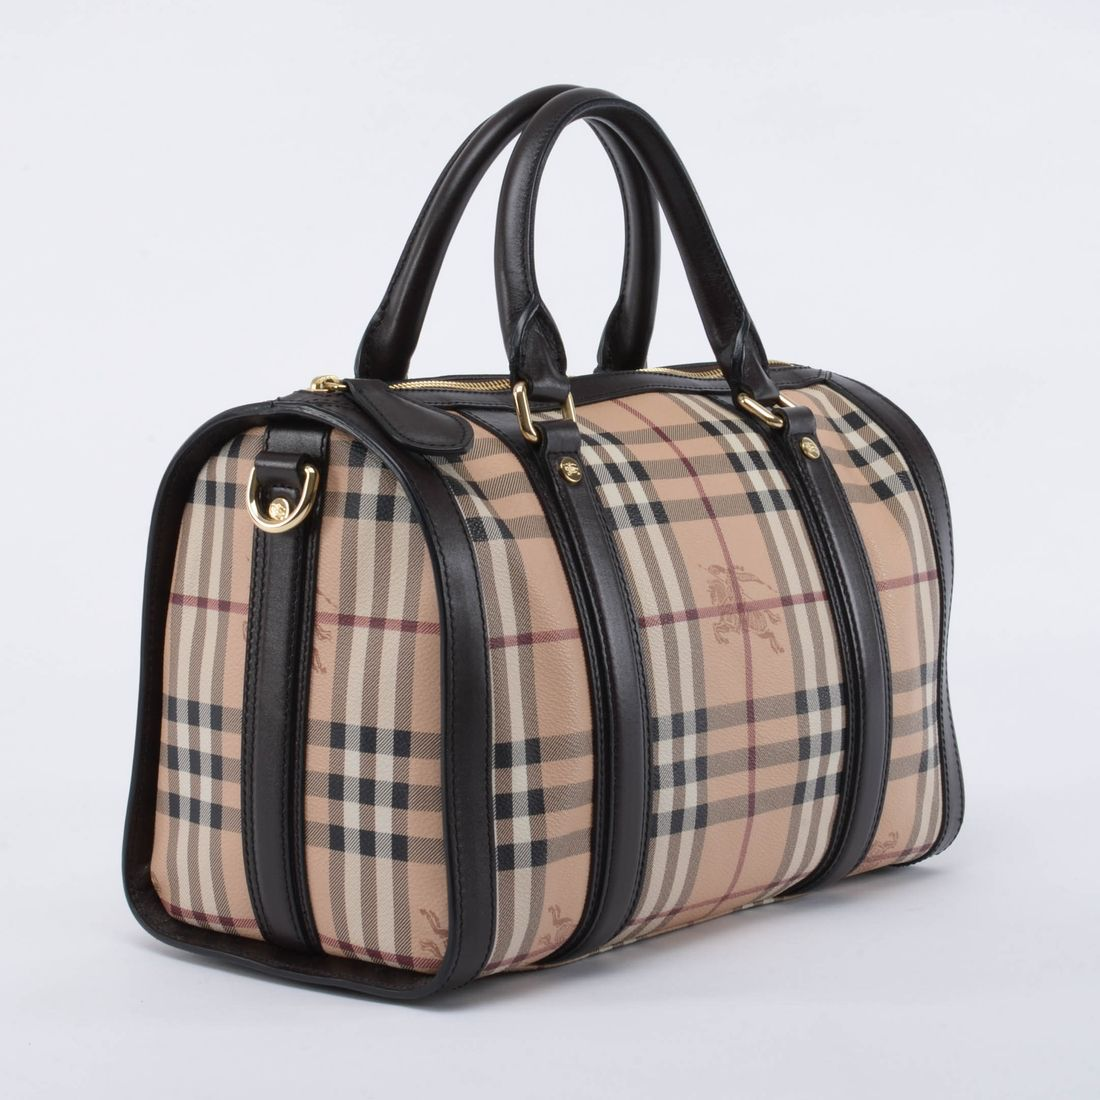 A Burberry Haymarket Check Alchester Bowling Bag. This